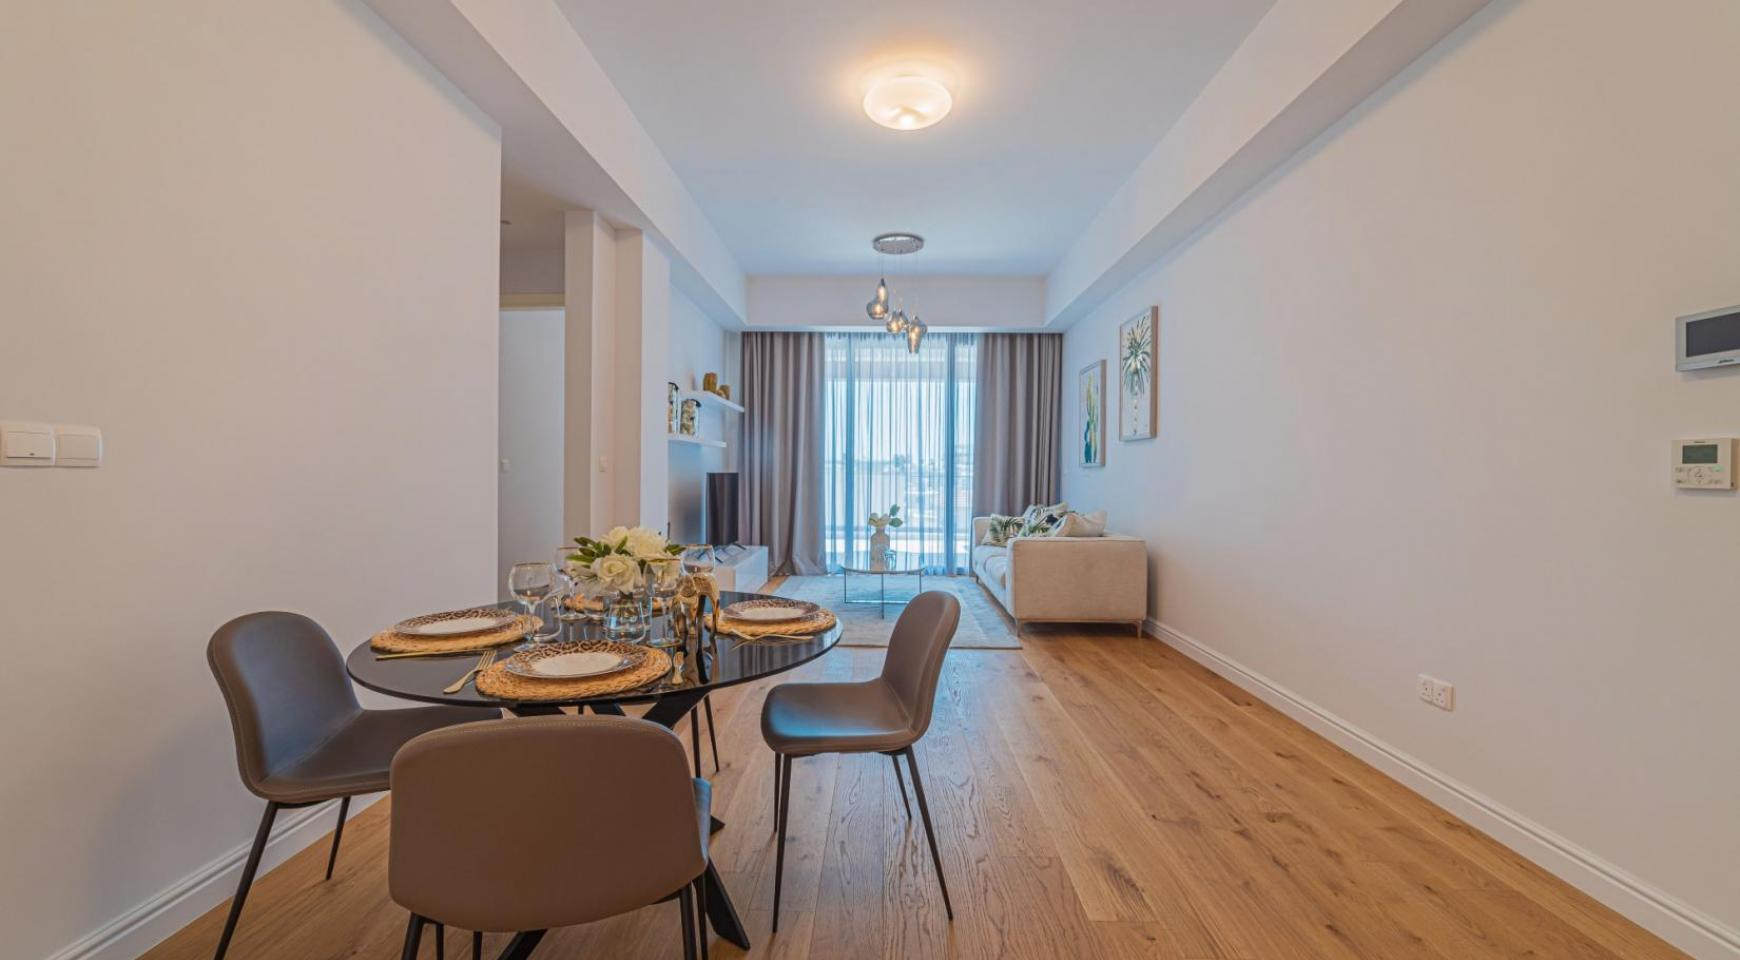 Hortensia Residence, Apt. 202. 2 Bedroom Apartment within a New Complex near the Sea  - 56